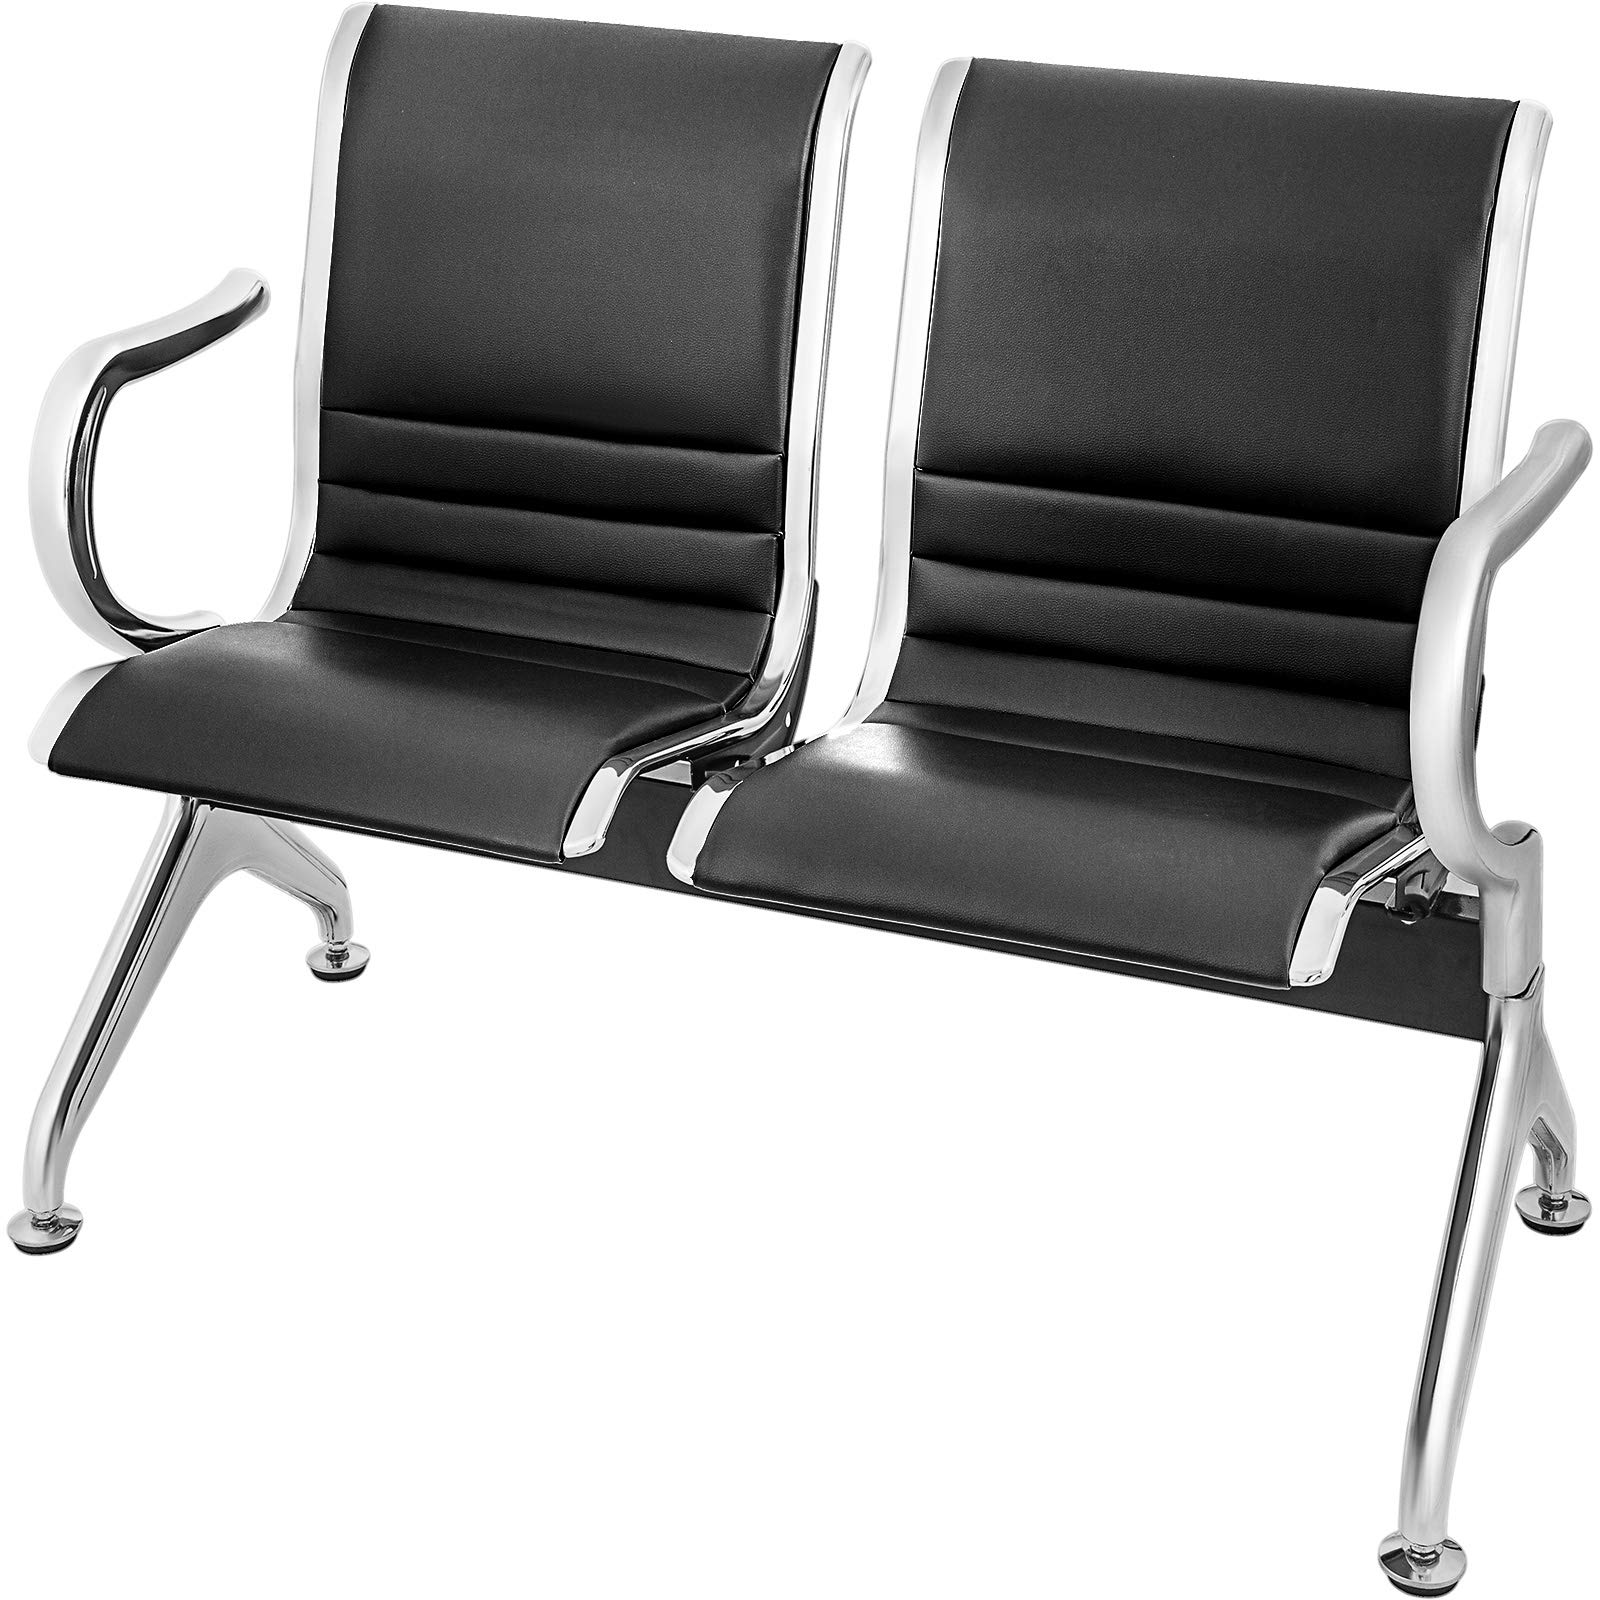 VEVOR Waiting Room Chairs 2 Seat PU Leather Business Reception Bench Waiting Chairs for Office Barbershop Salon Airport Bank Hospital Market(2 Seat,Black)